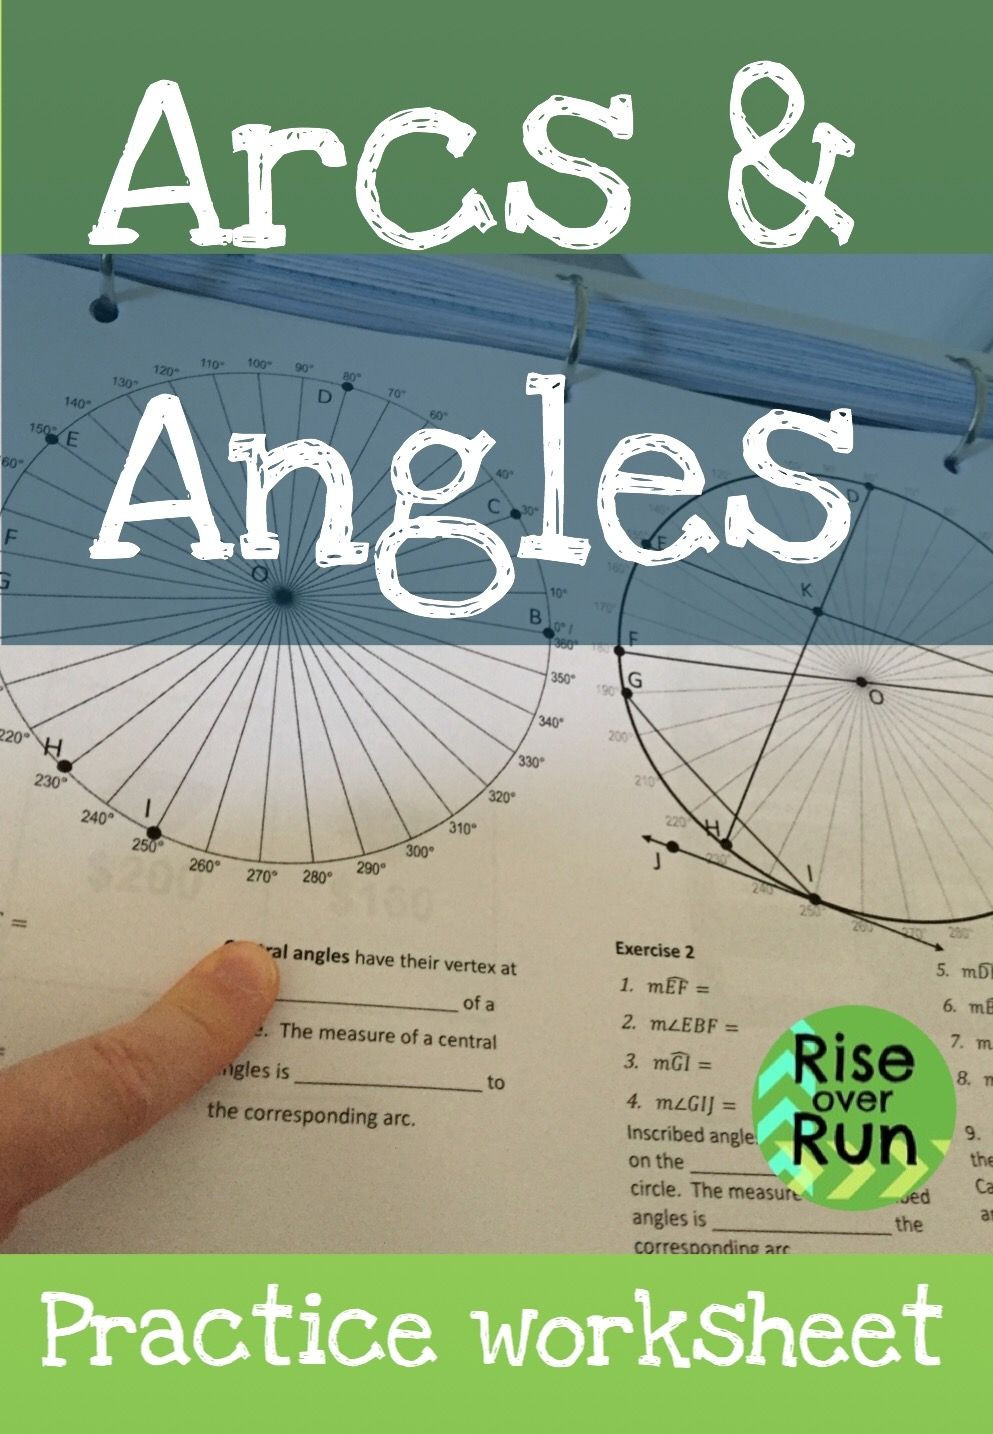 Angles In Circles Worksheet Arcs and Angles In Circles Worksheet Great Way to Explore